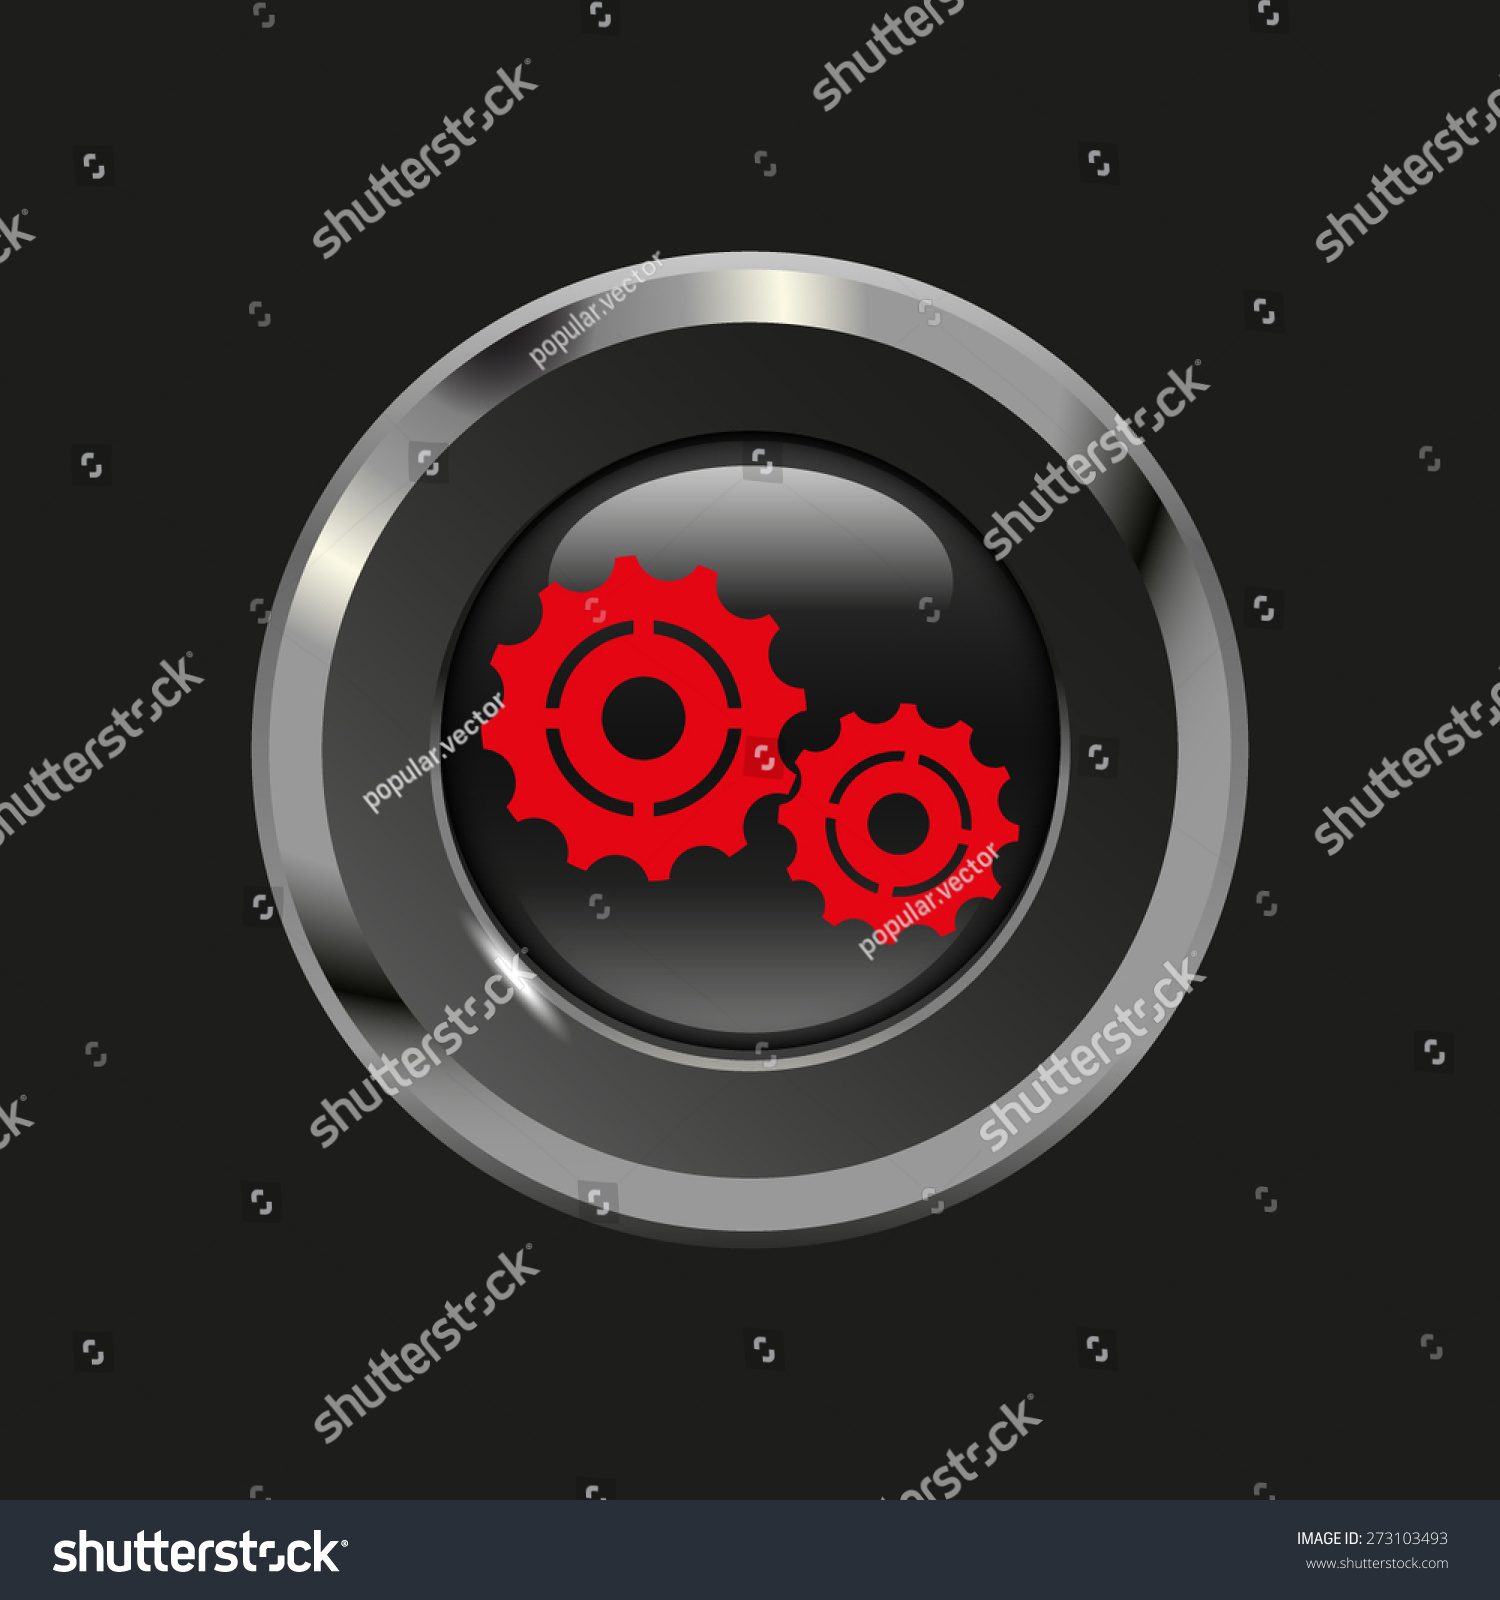 Black Glossy Button Metallic Elements Red Stock Vector Royalty Free 273103493